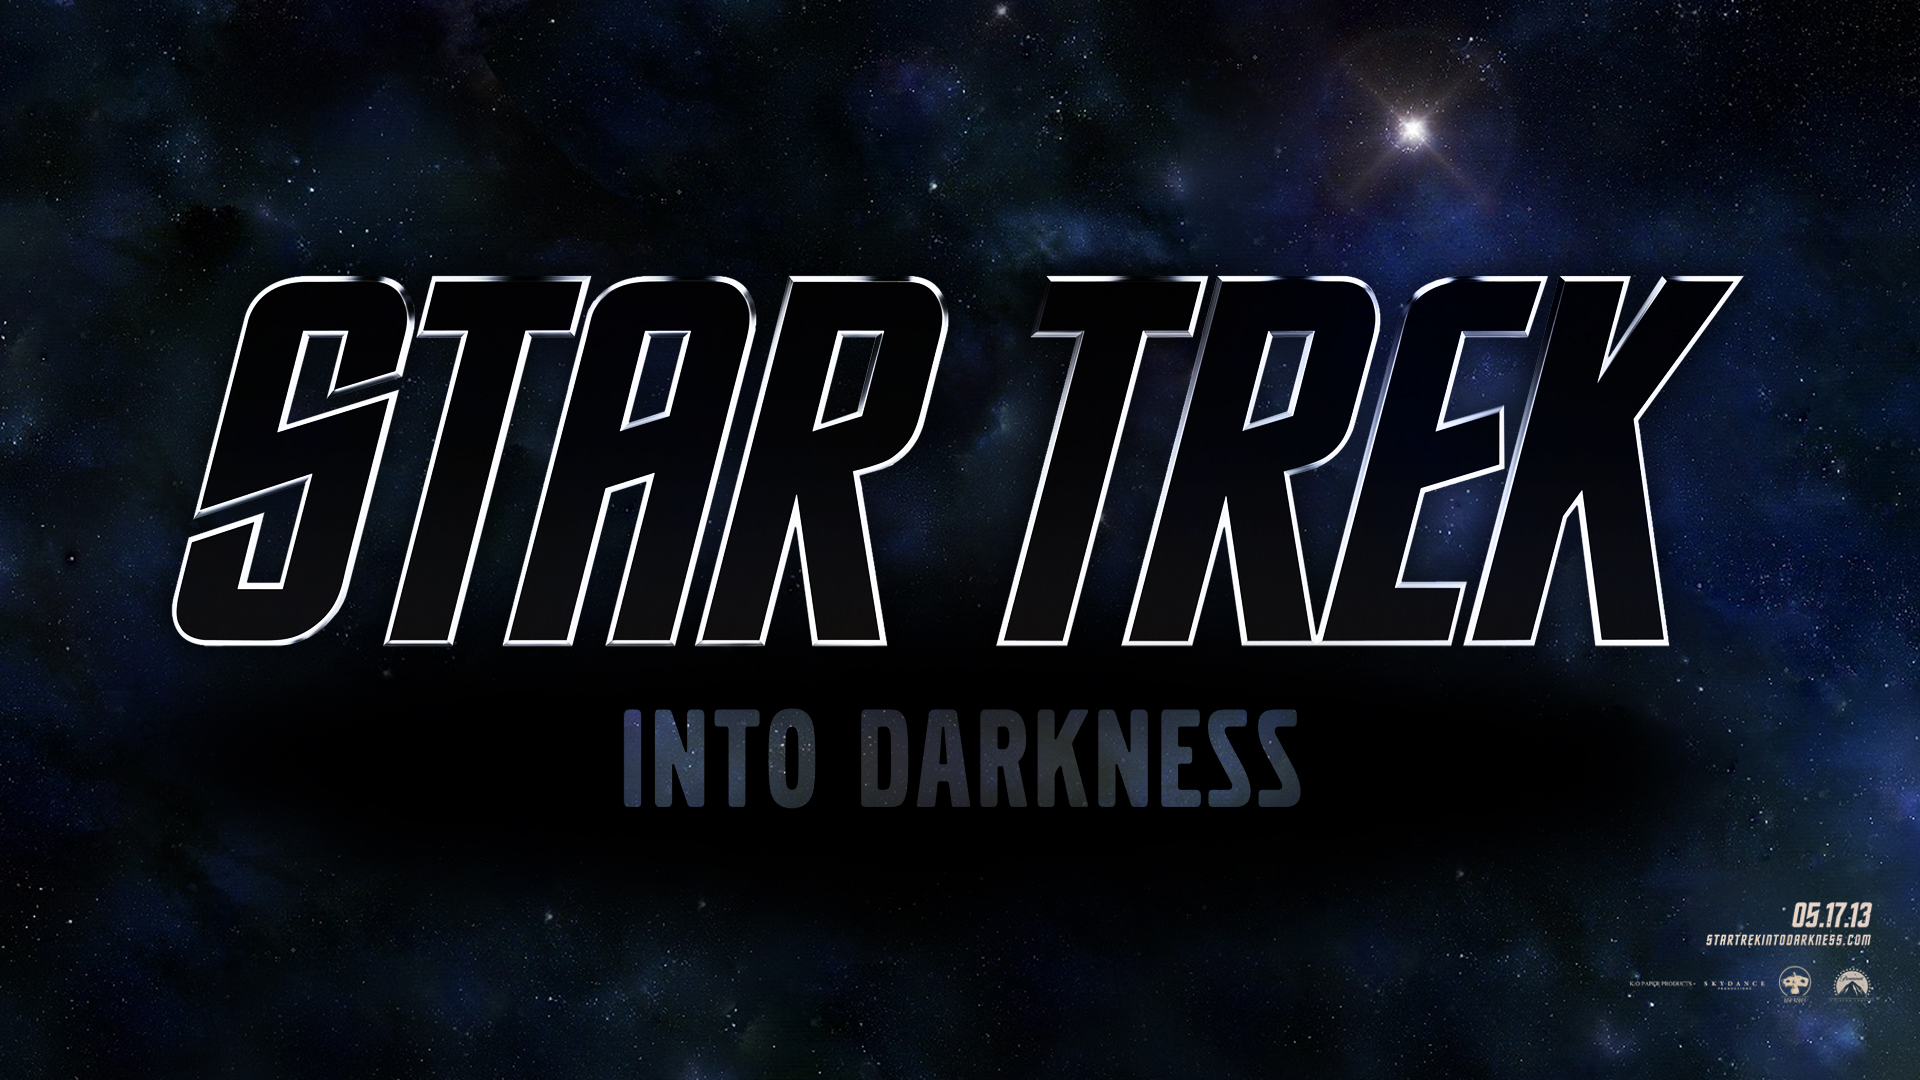 Star Trek Into Darkness Backgrounds Pictures Images